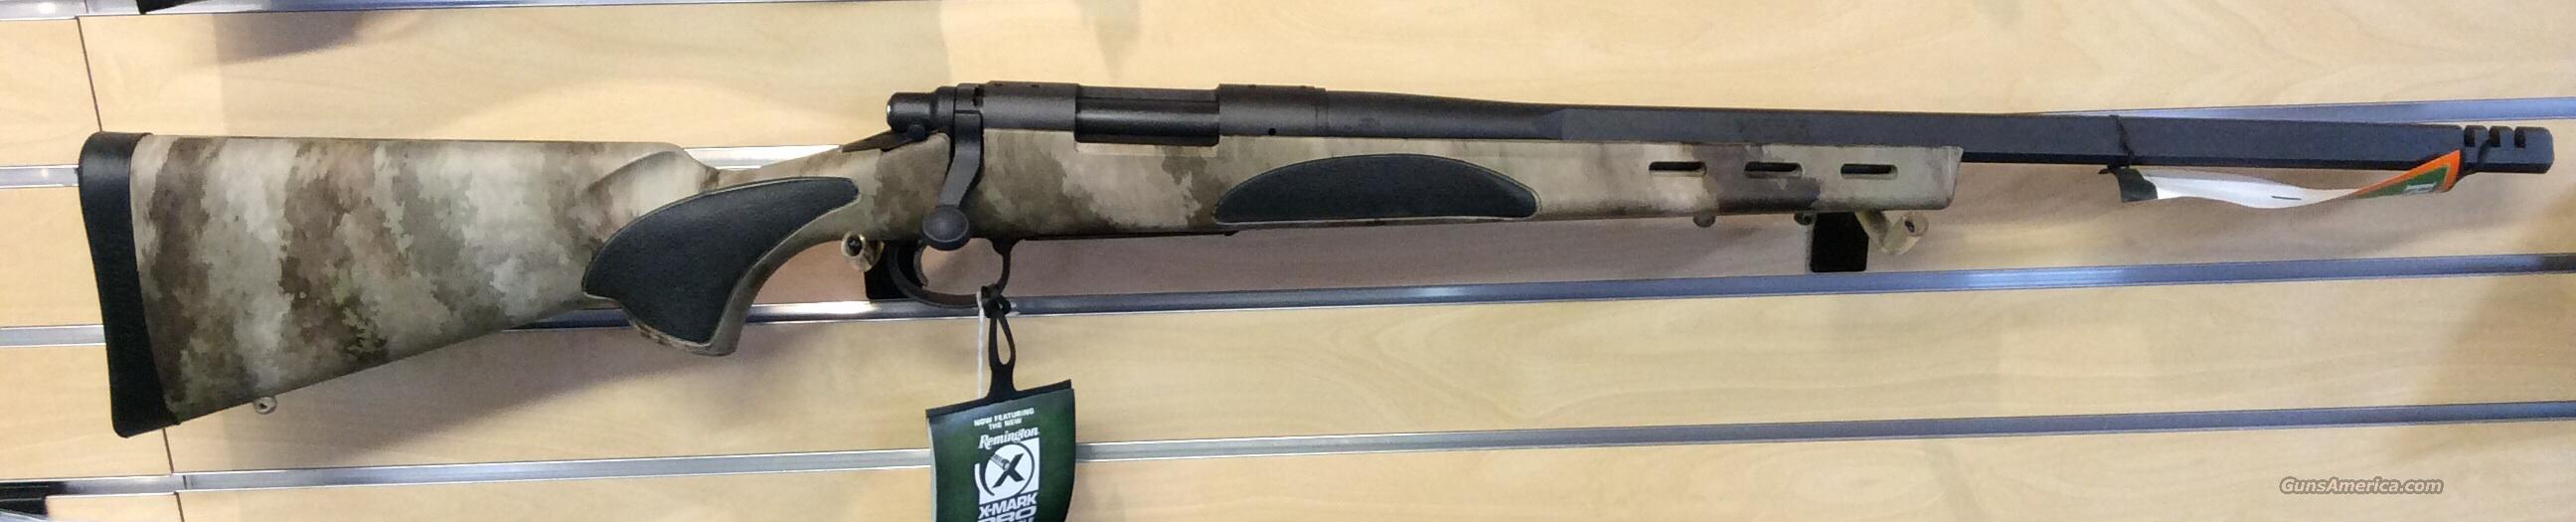 Remington 700 VTR  .223  Guns > Rifles > Remington Rifles - Modern > Model 700 > Sporting